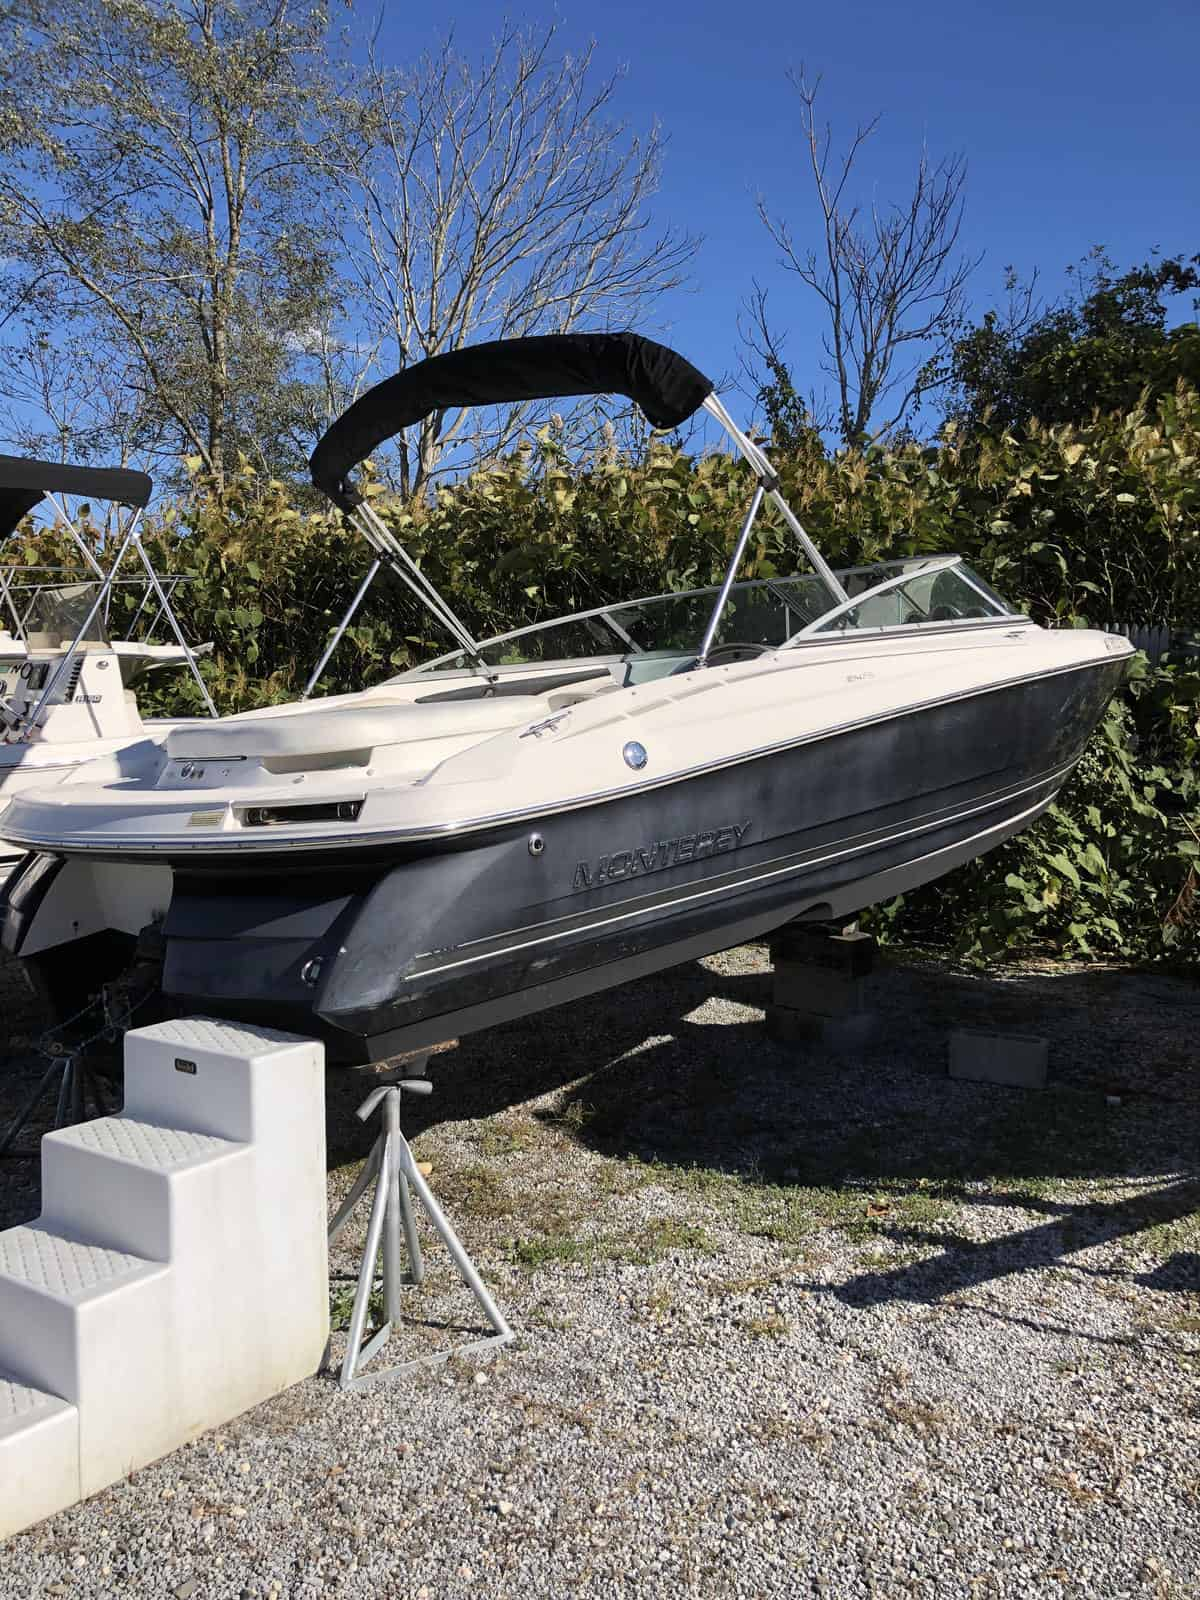 USED 2007 Monterey 214FS - Great Bay Marine